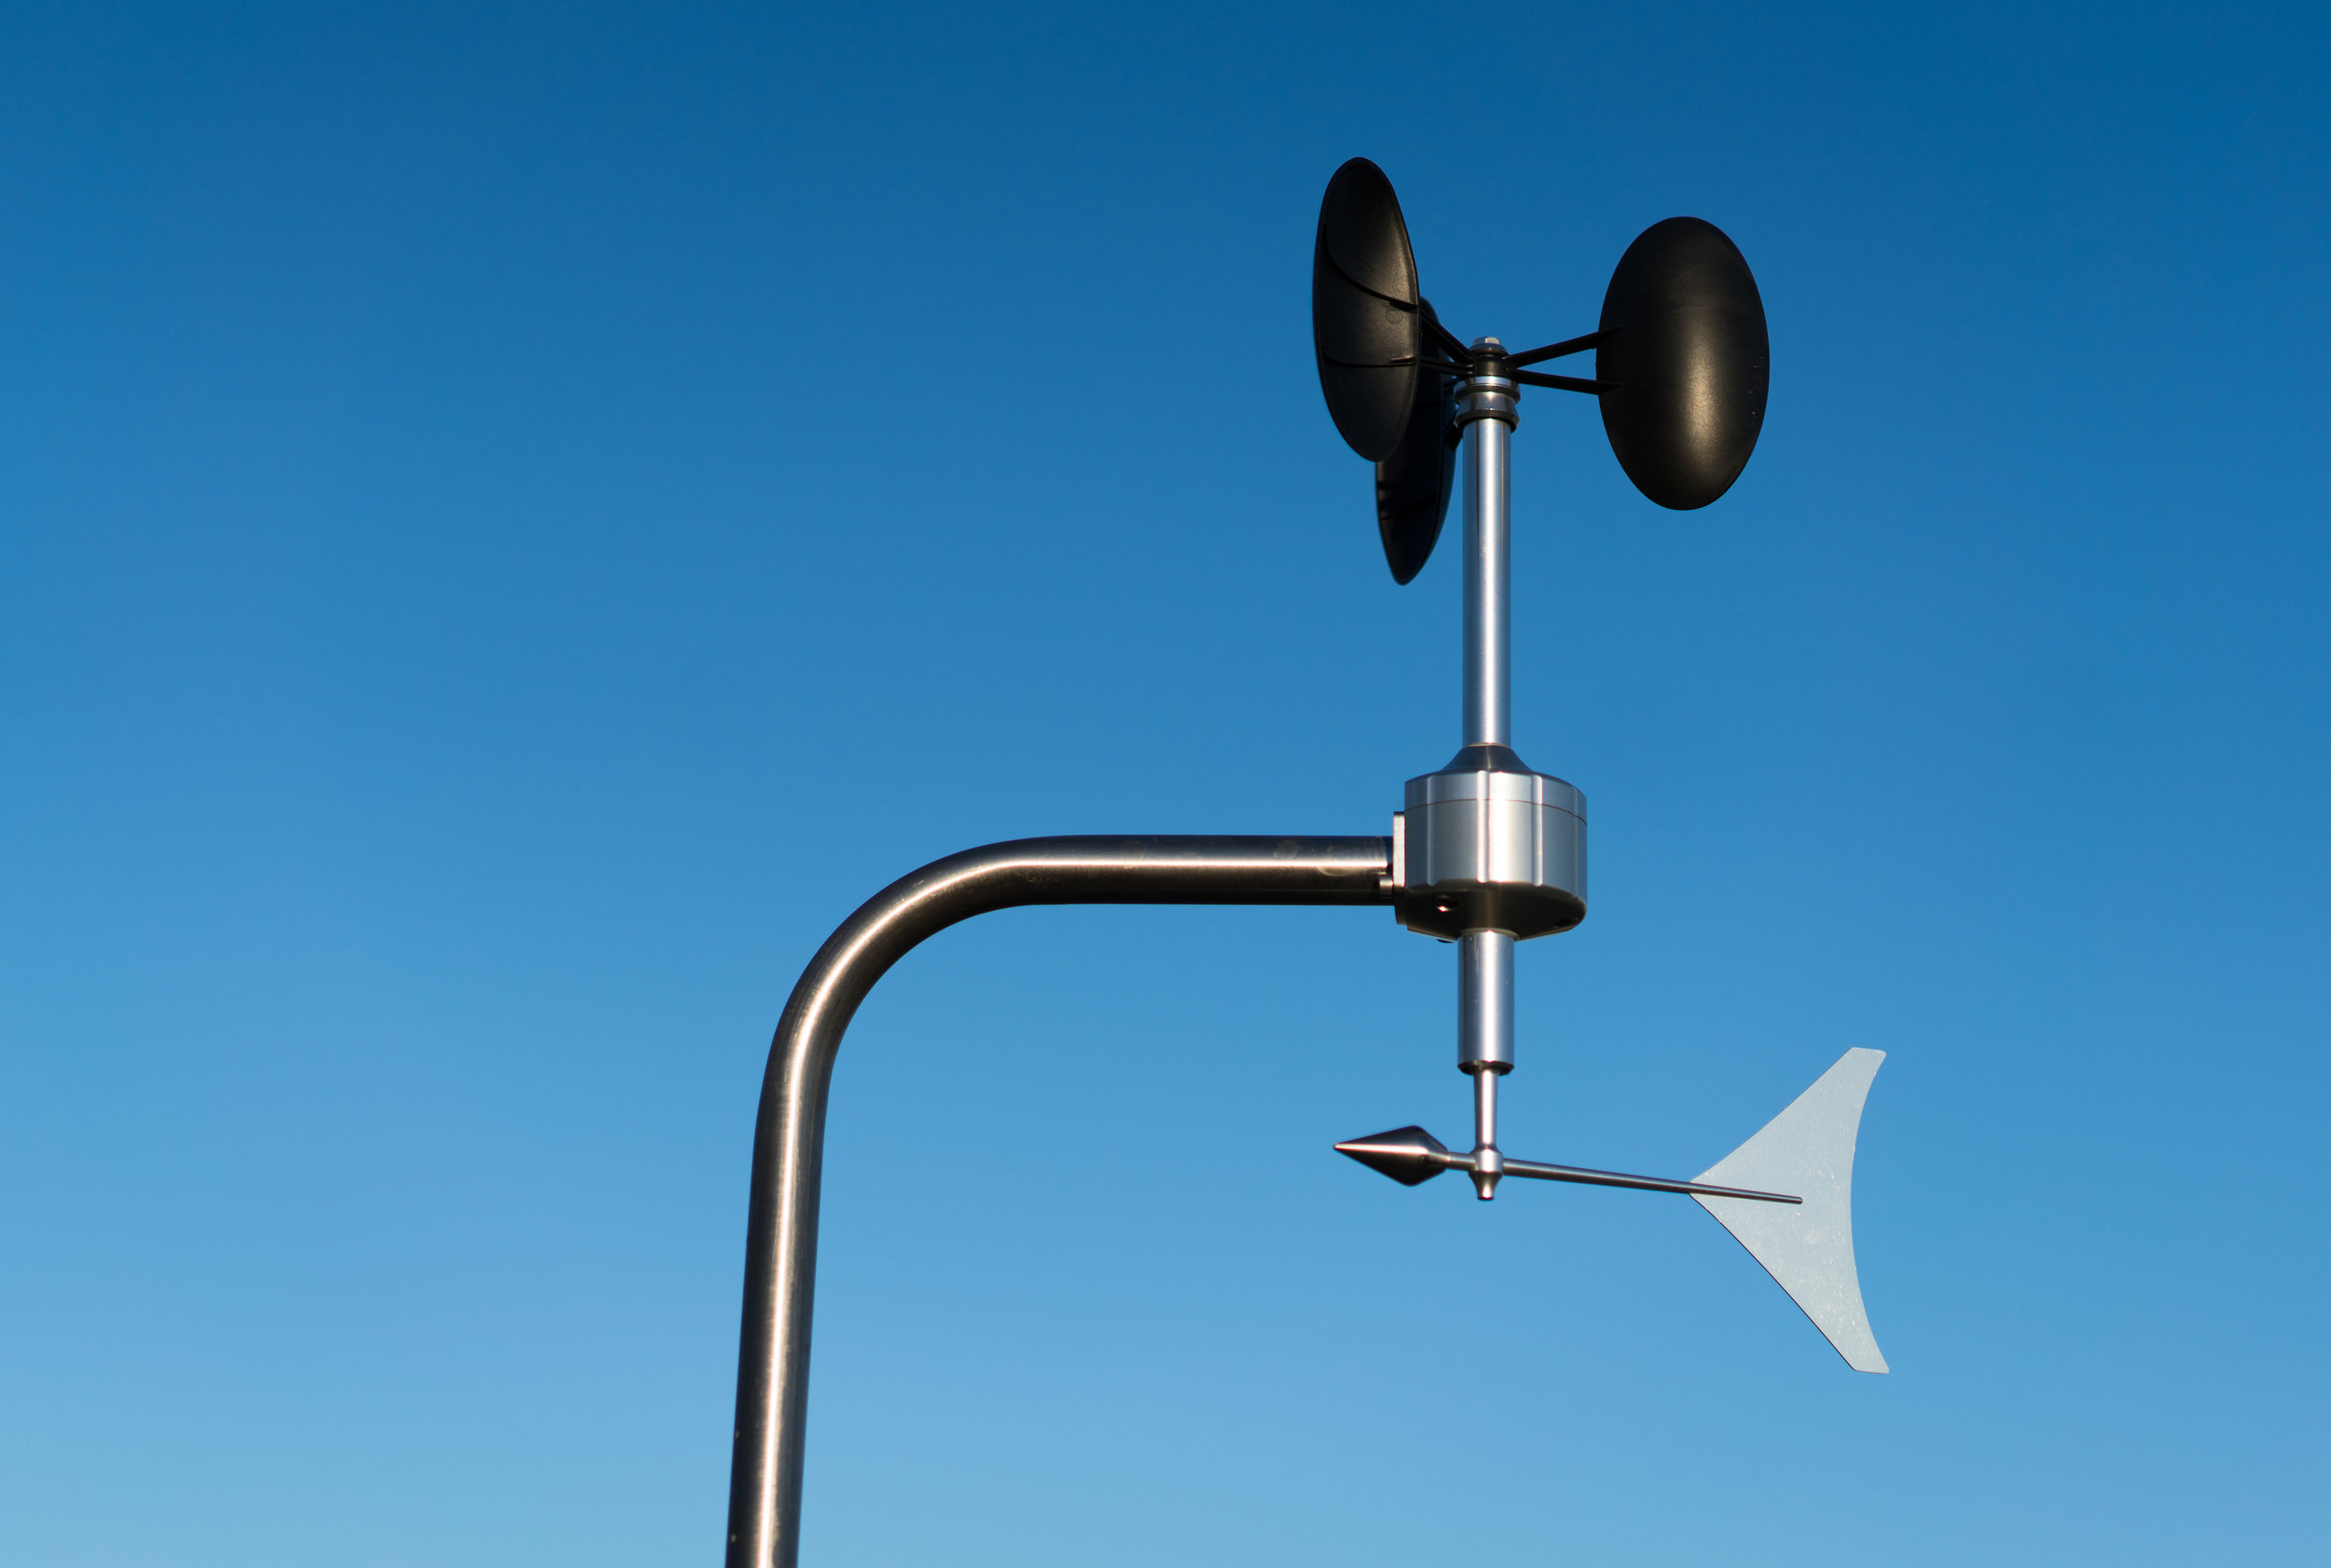 Anemometer and wind vane in clear skies